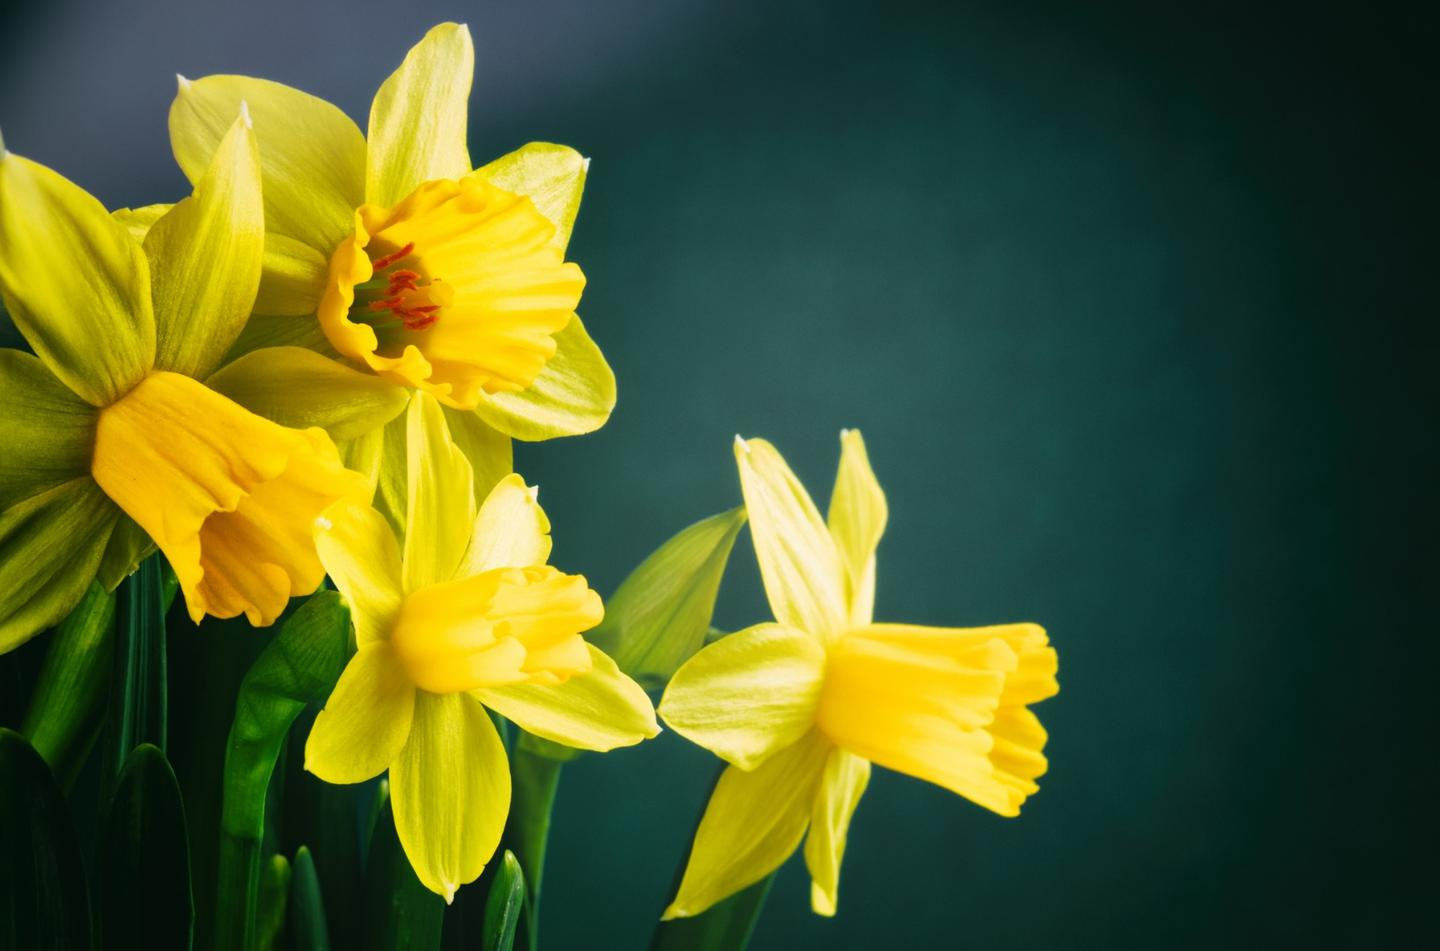 A compound extracted from daffodils has been found to be a potential cancer killer